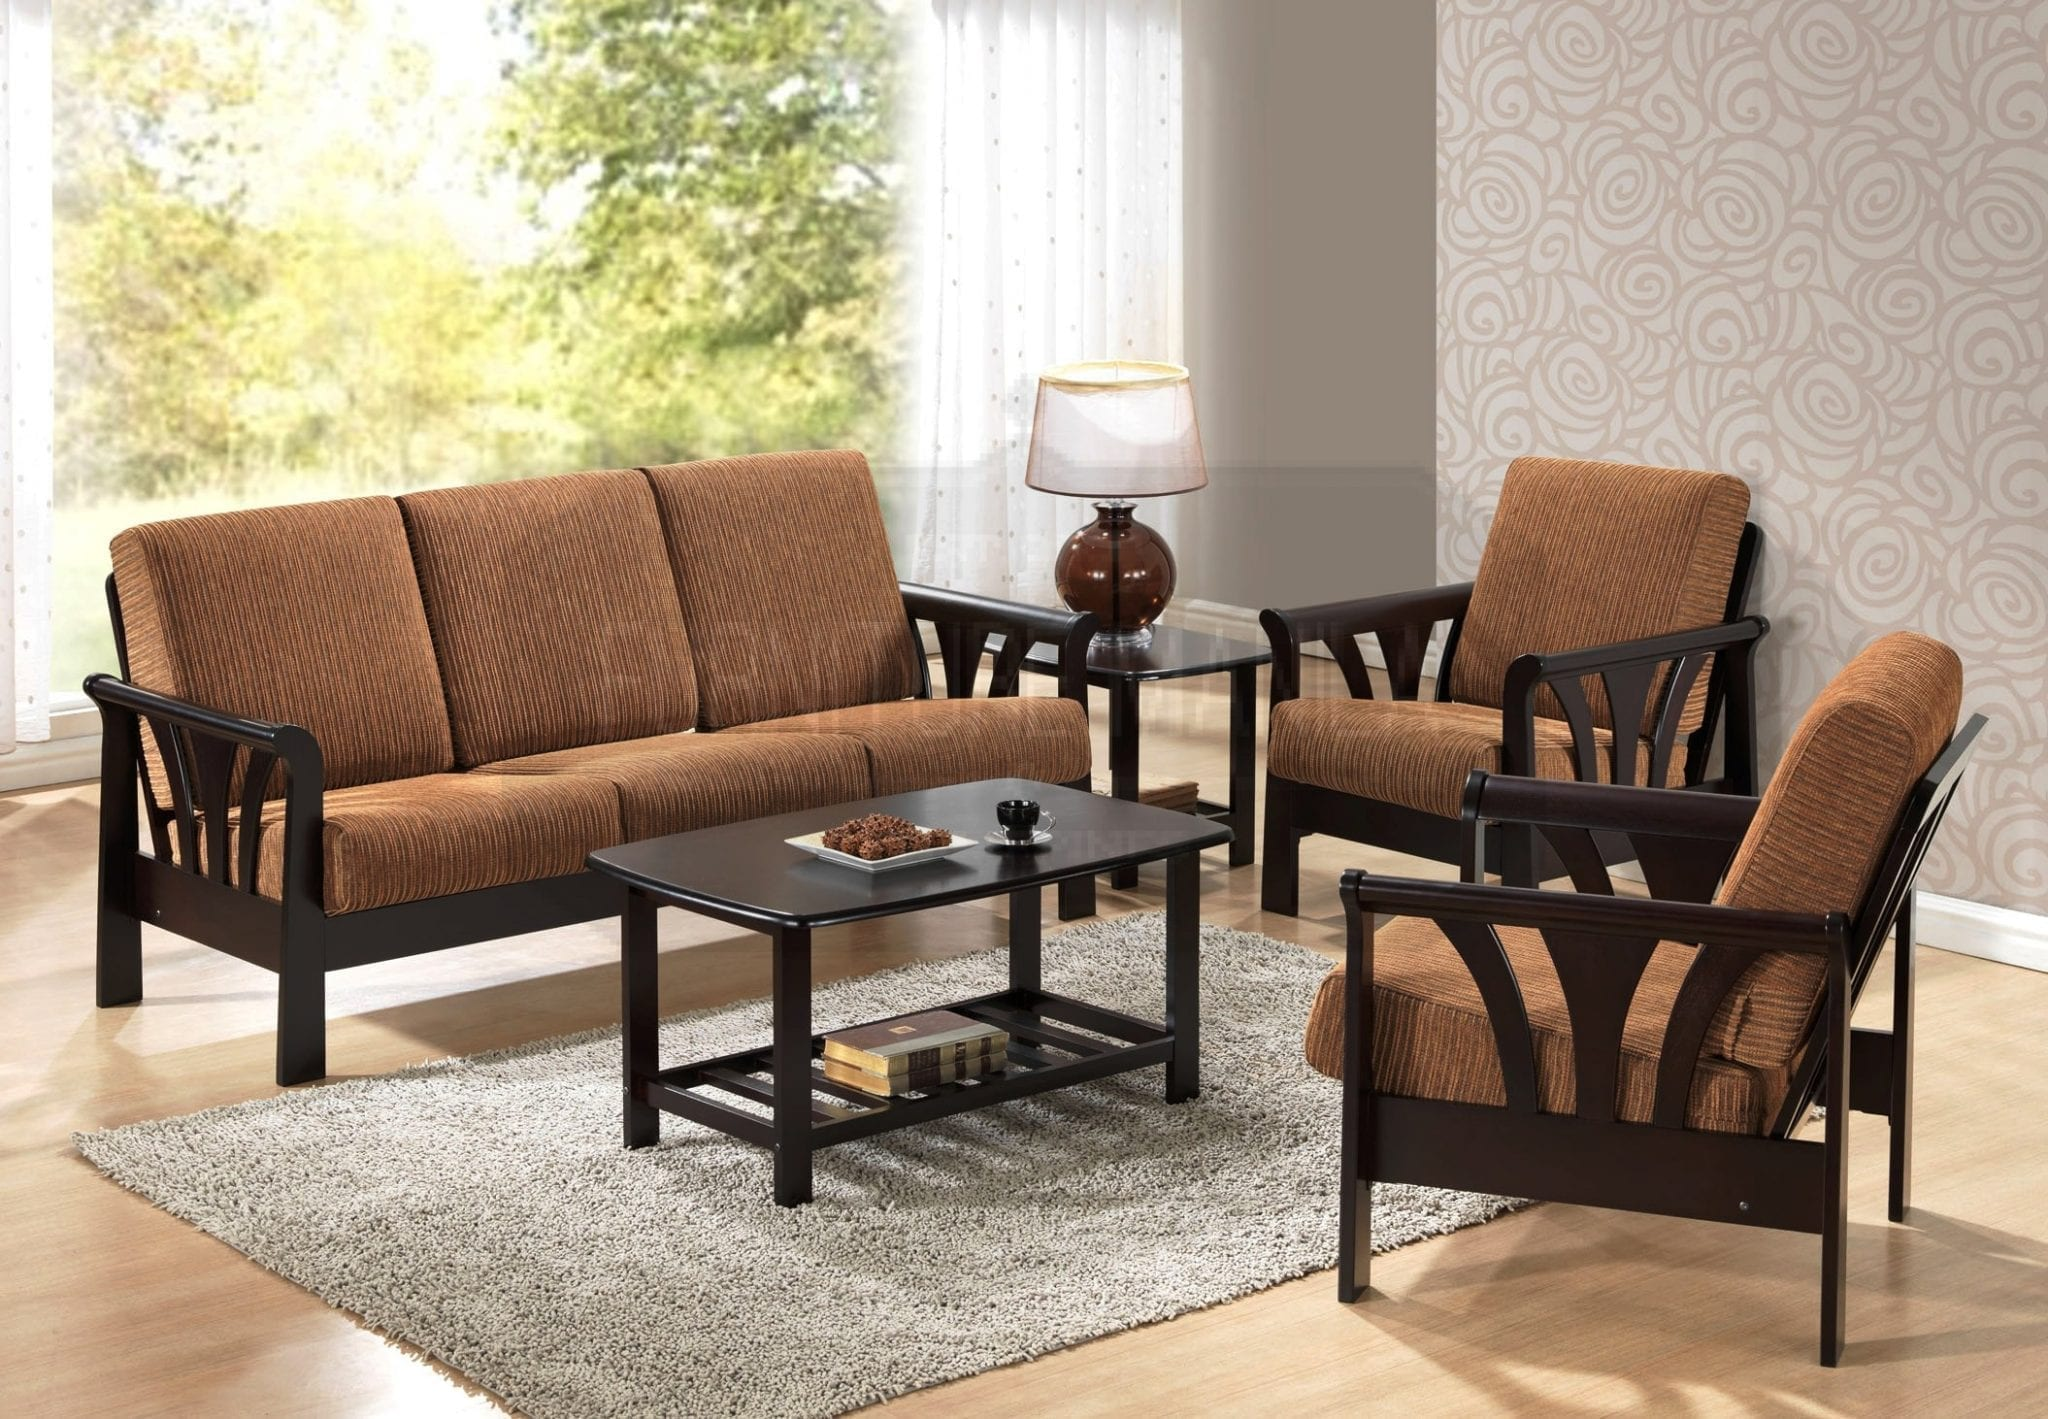 Sofa Set Laguna Philippines Yg310 Wooden Sofa Set Home And Office Furniture Philippines